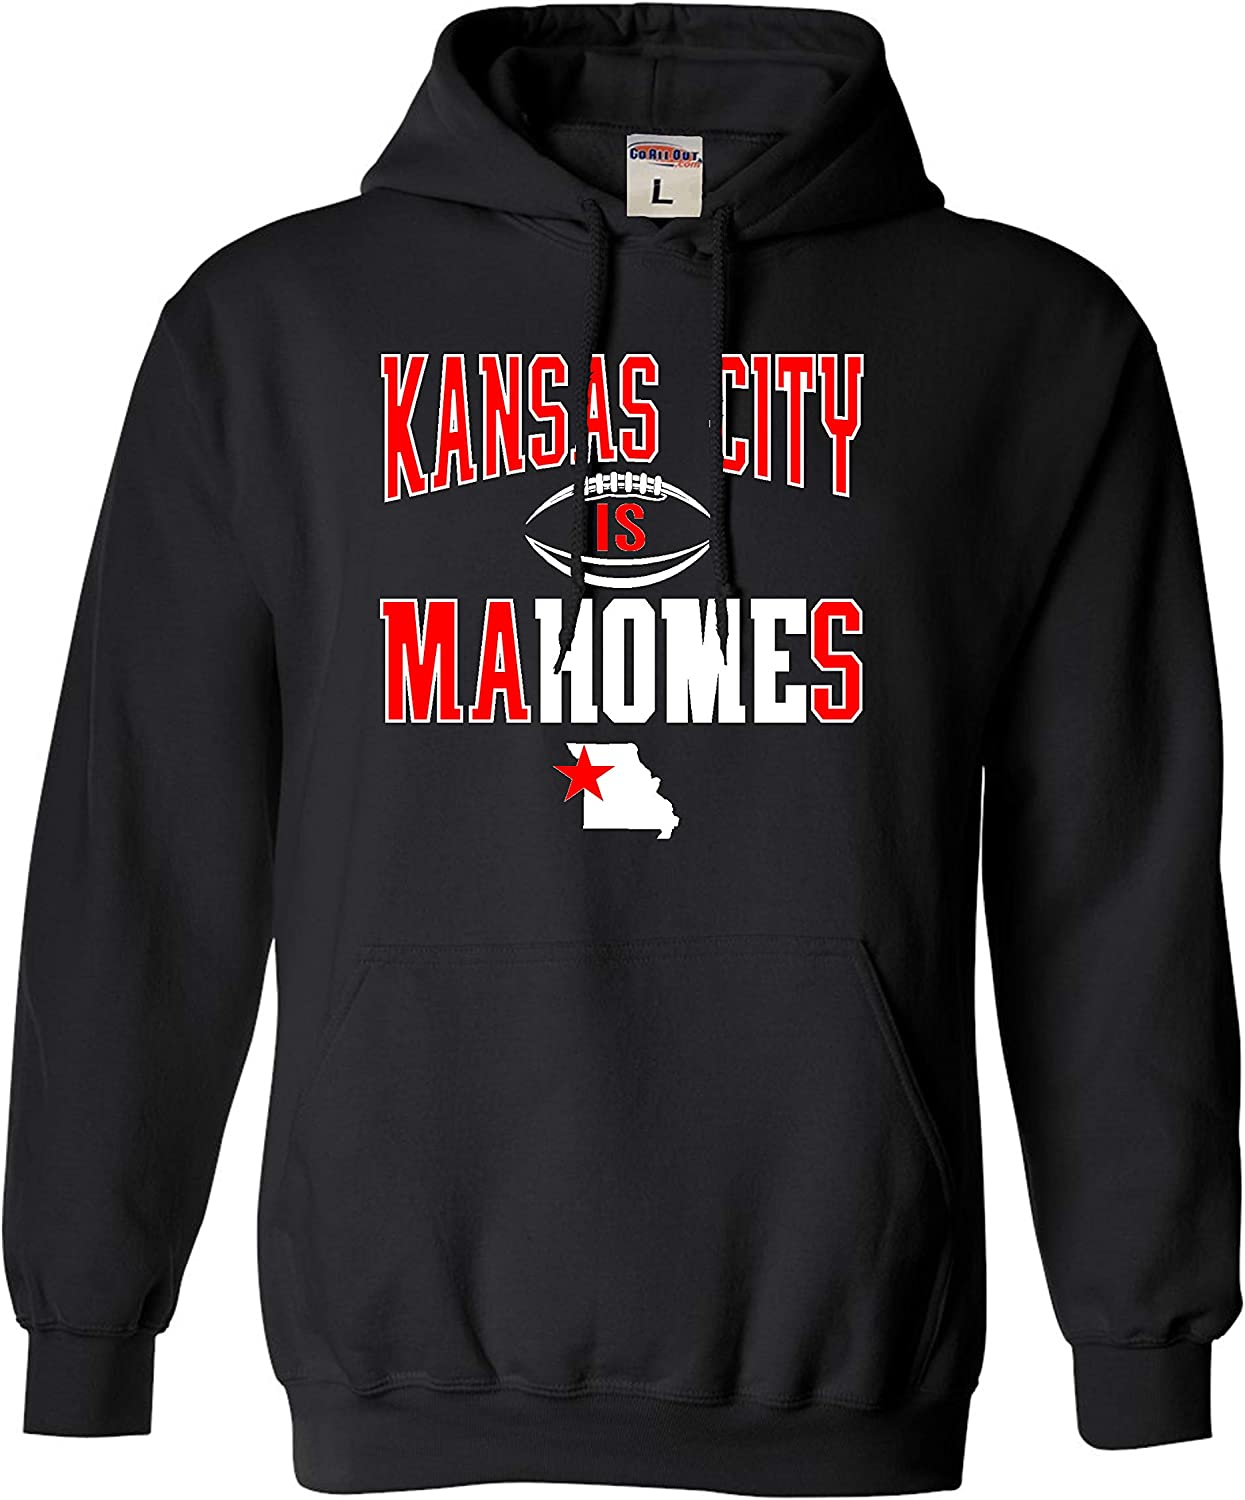 Go All Out Adult and Youth Kansas City is Mahomes Sweatshirt Hoodie